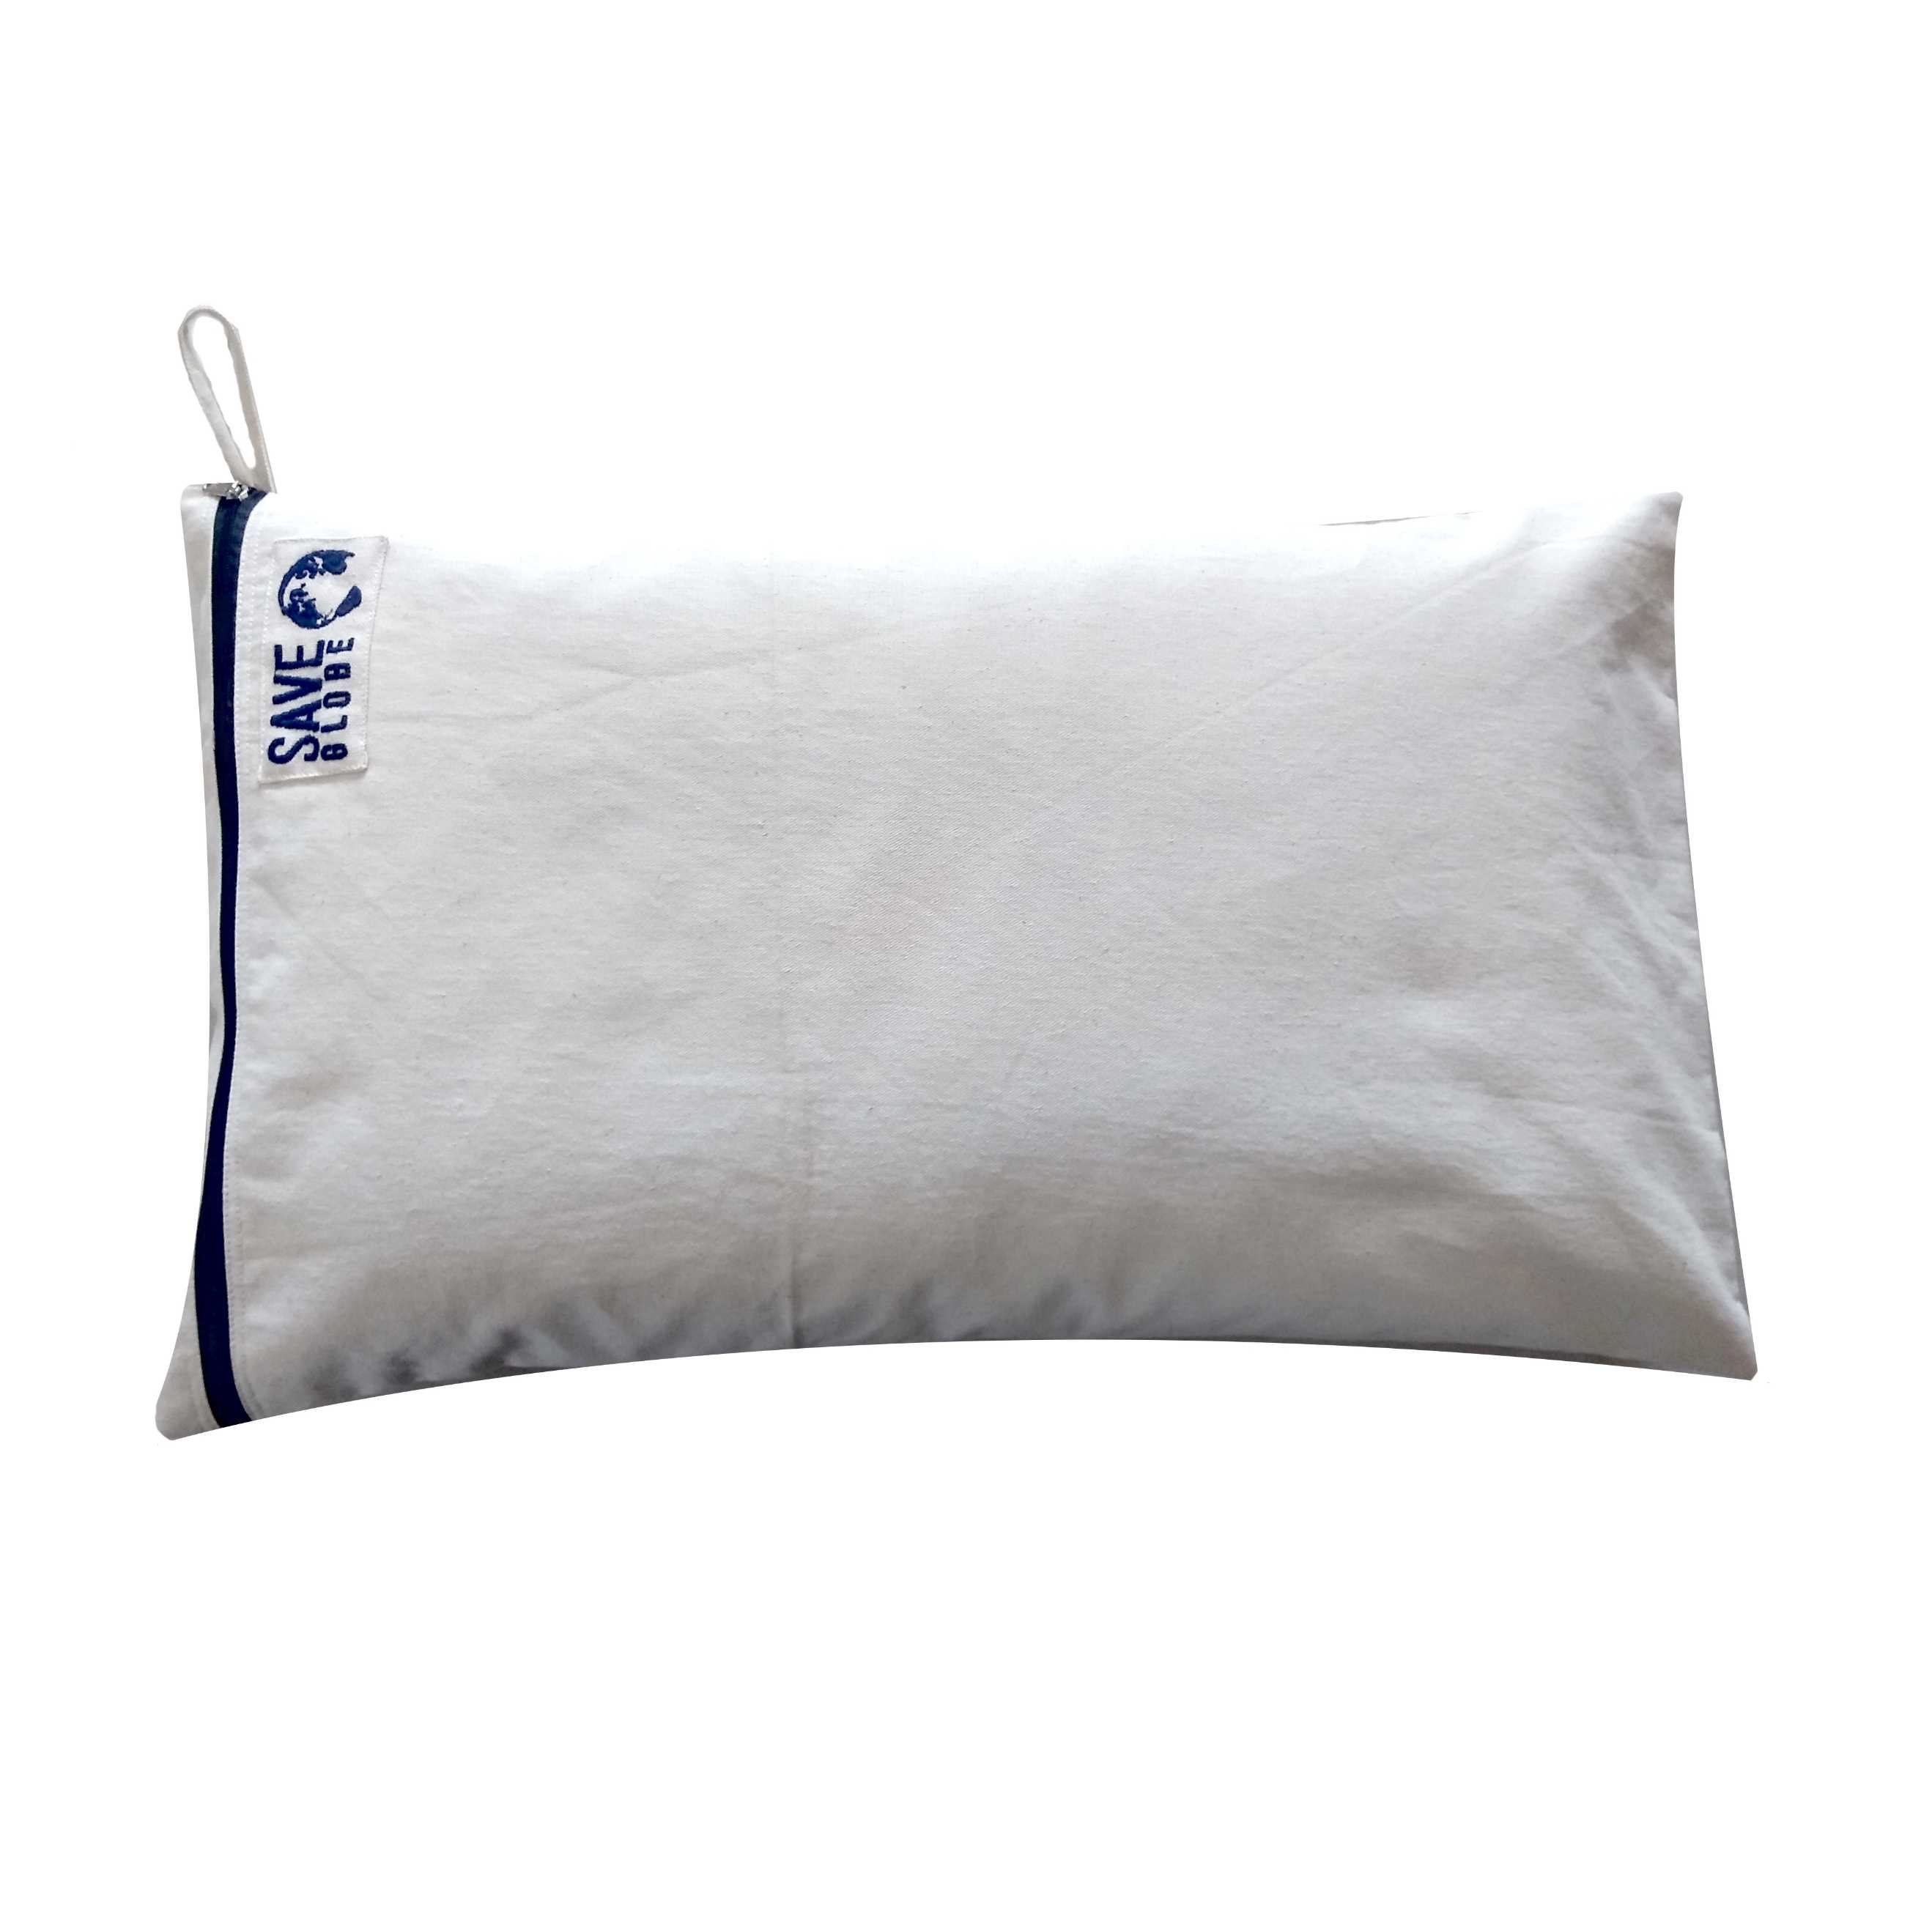 Ecofriendly organic pillows for neckpain online india